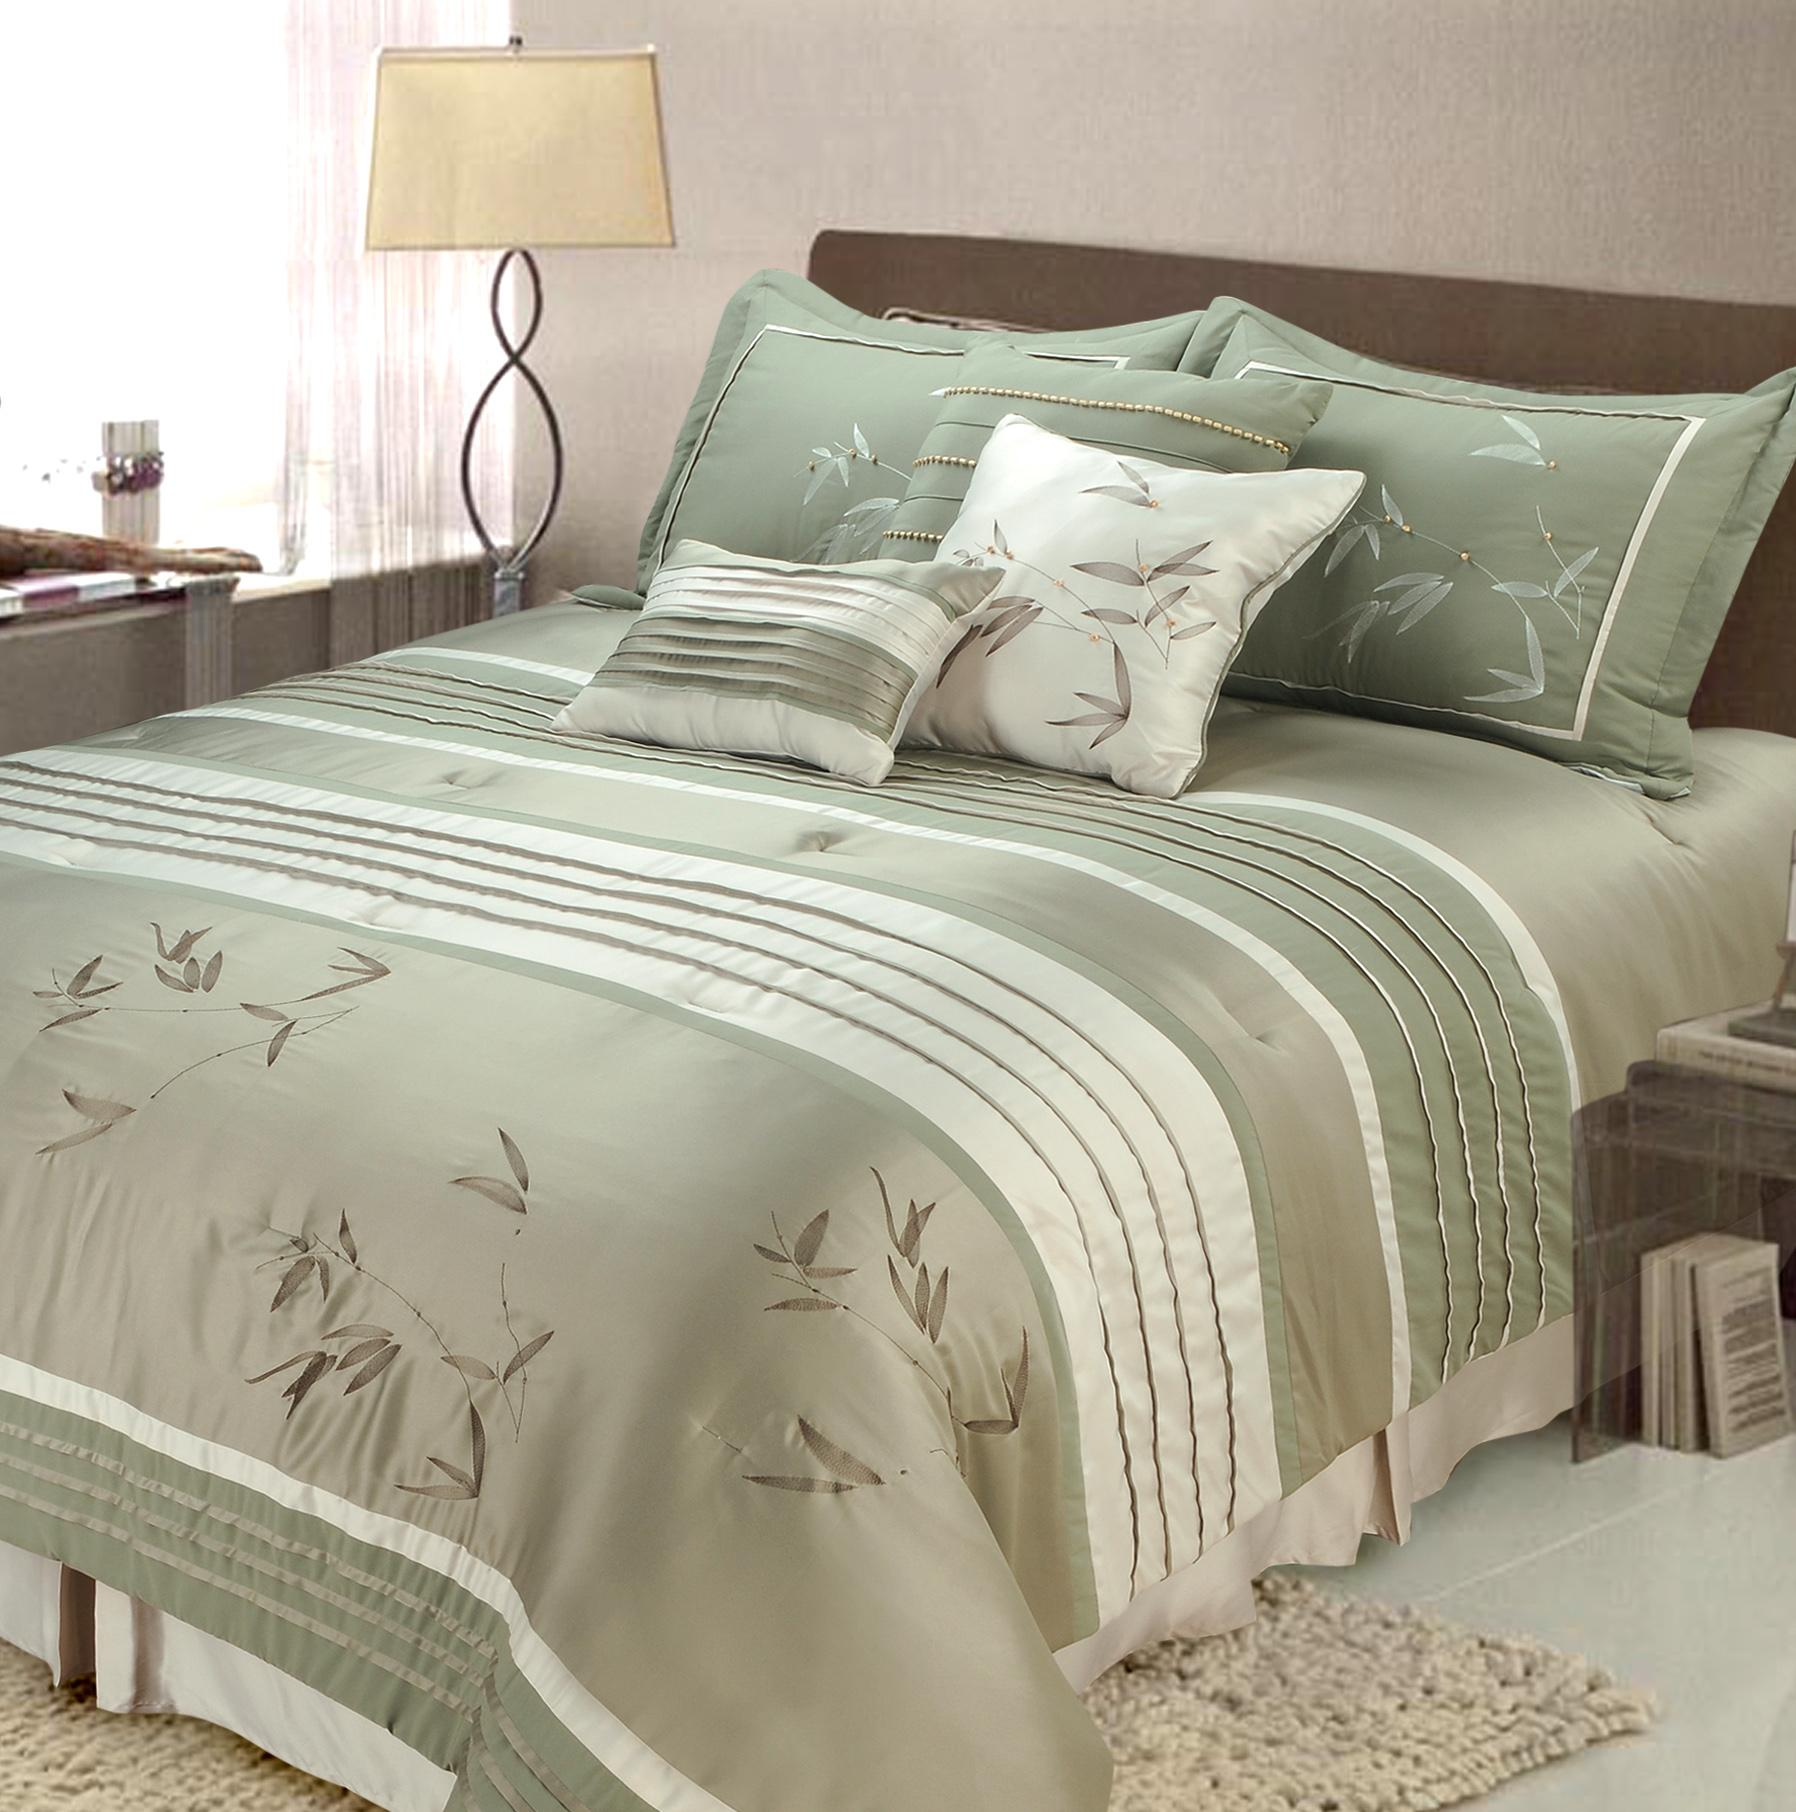 Gorgeous queen size comforter sets for bedroom design with cheap queen size comforter sets